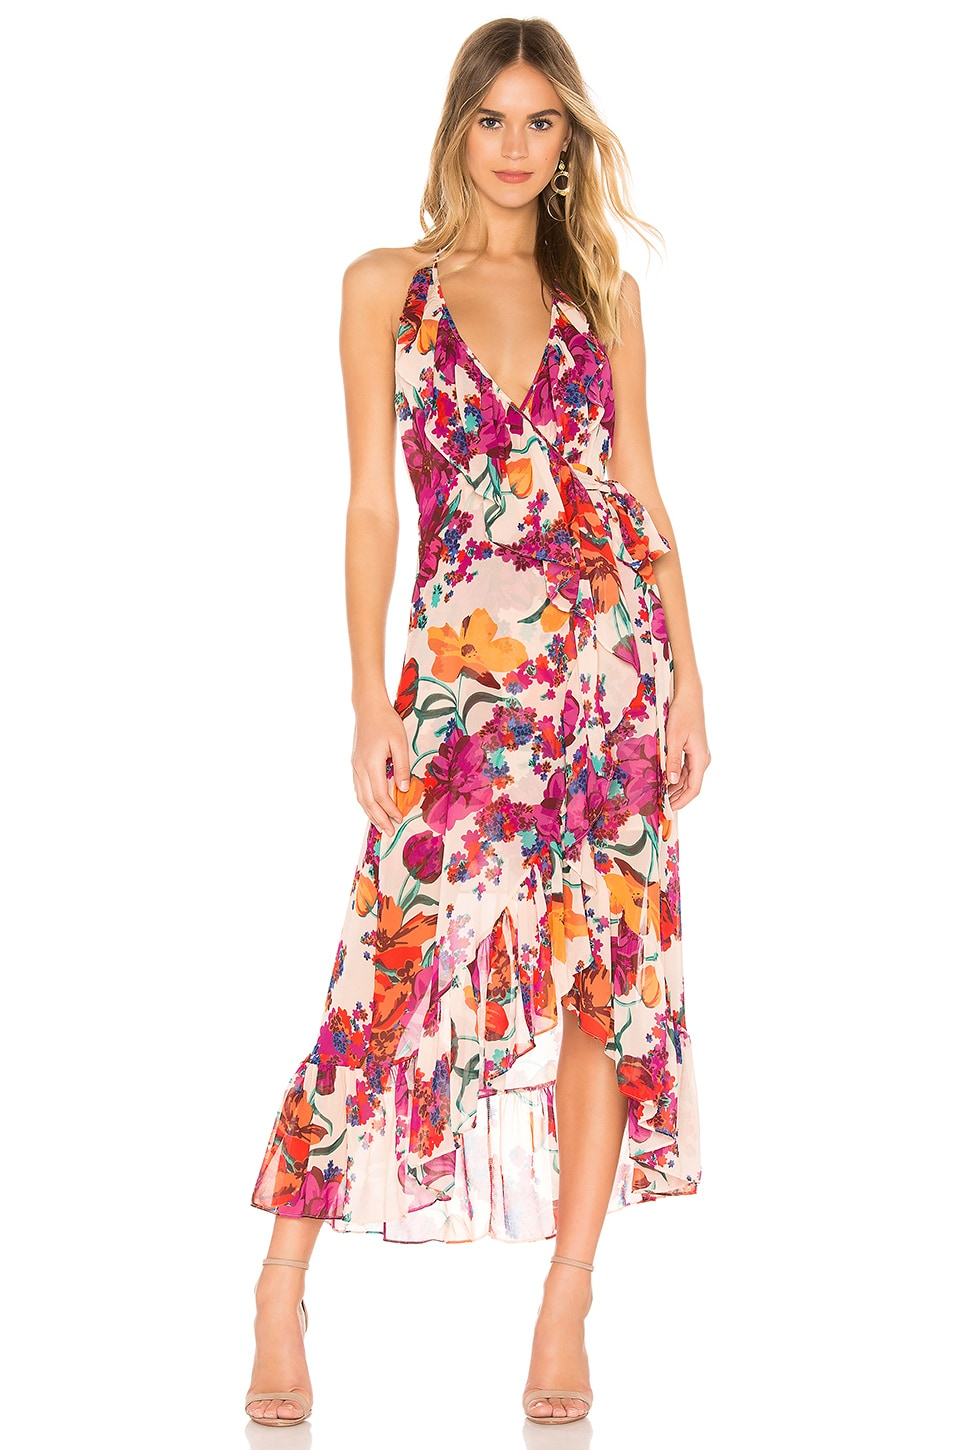 MISA Los Angeles Melany Dress in Burgundy Floral